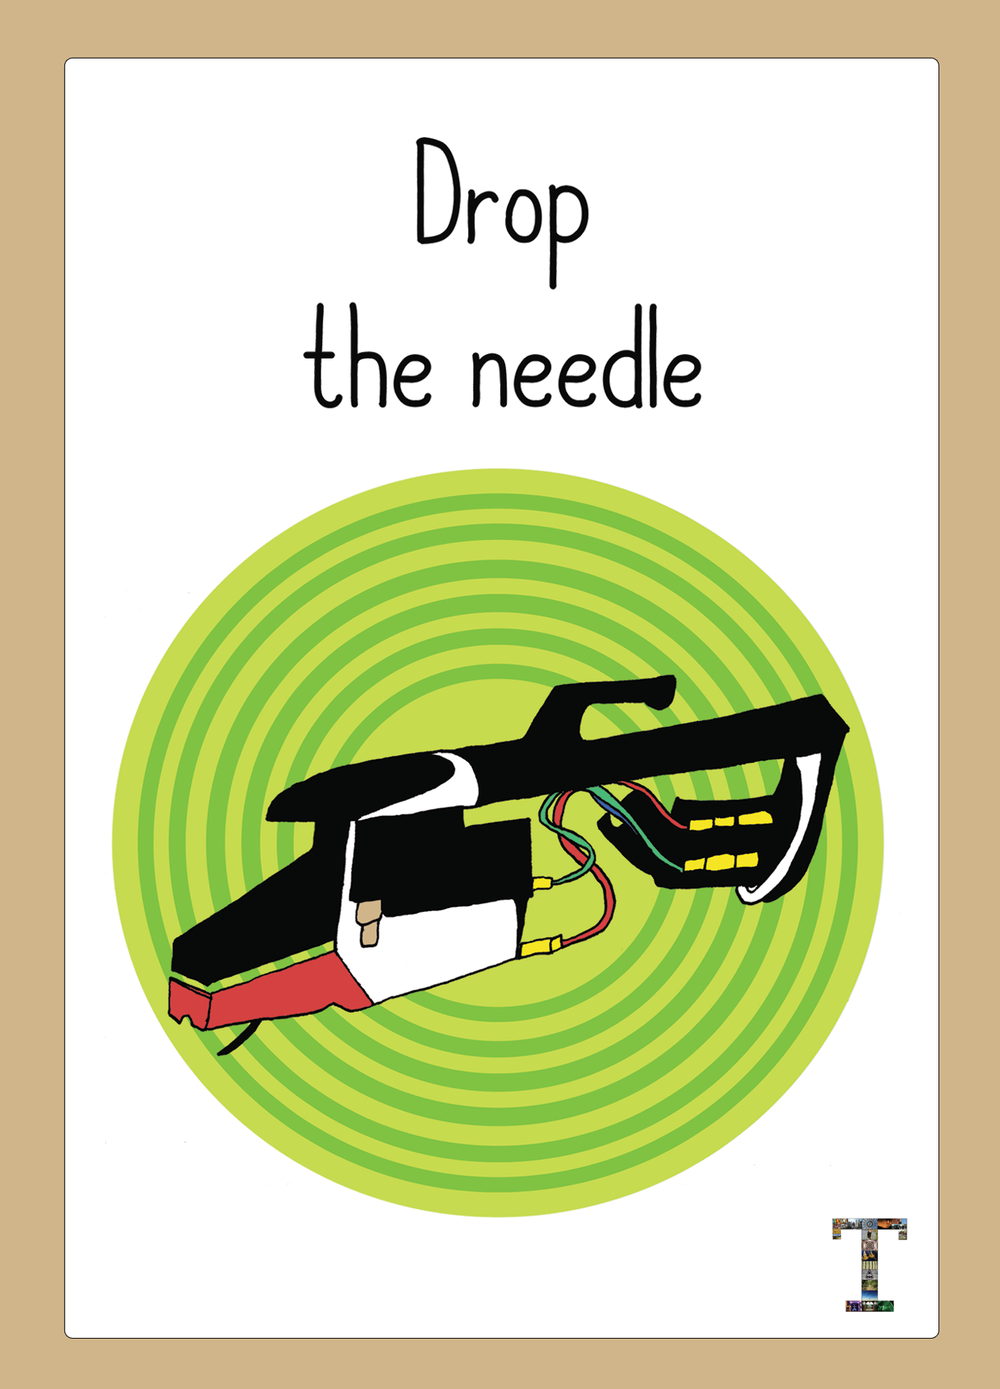 postcard_drop-the-needle.png